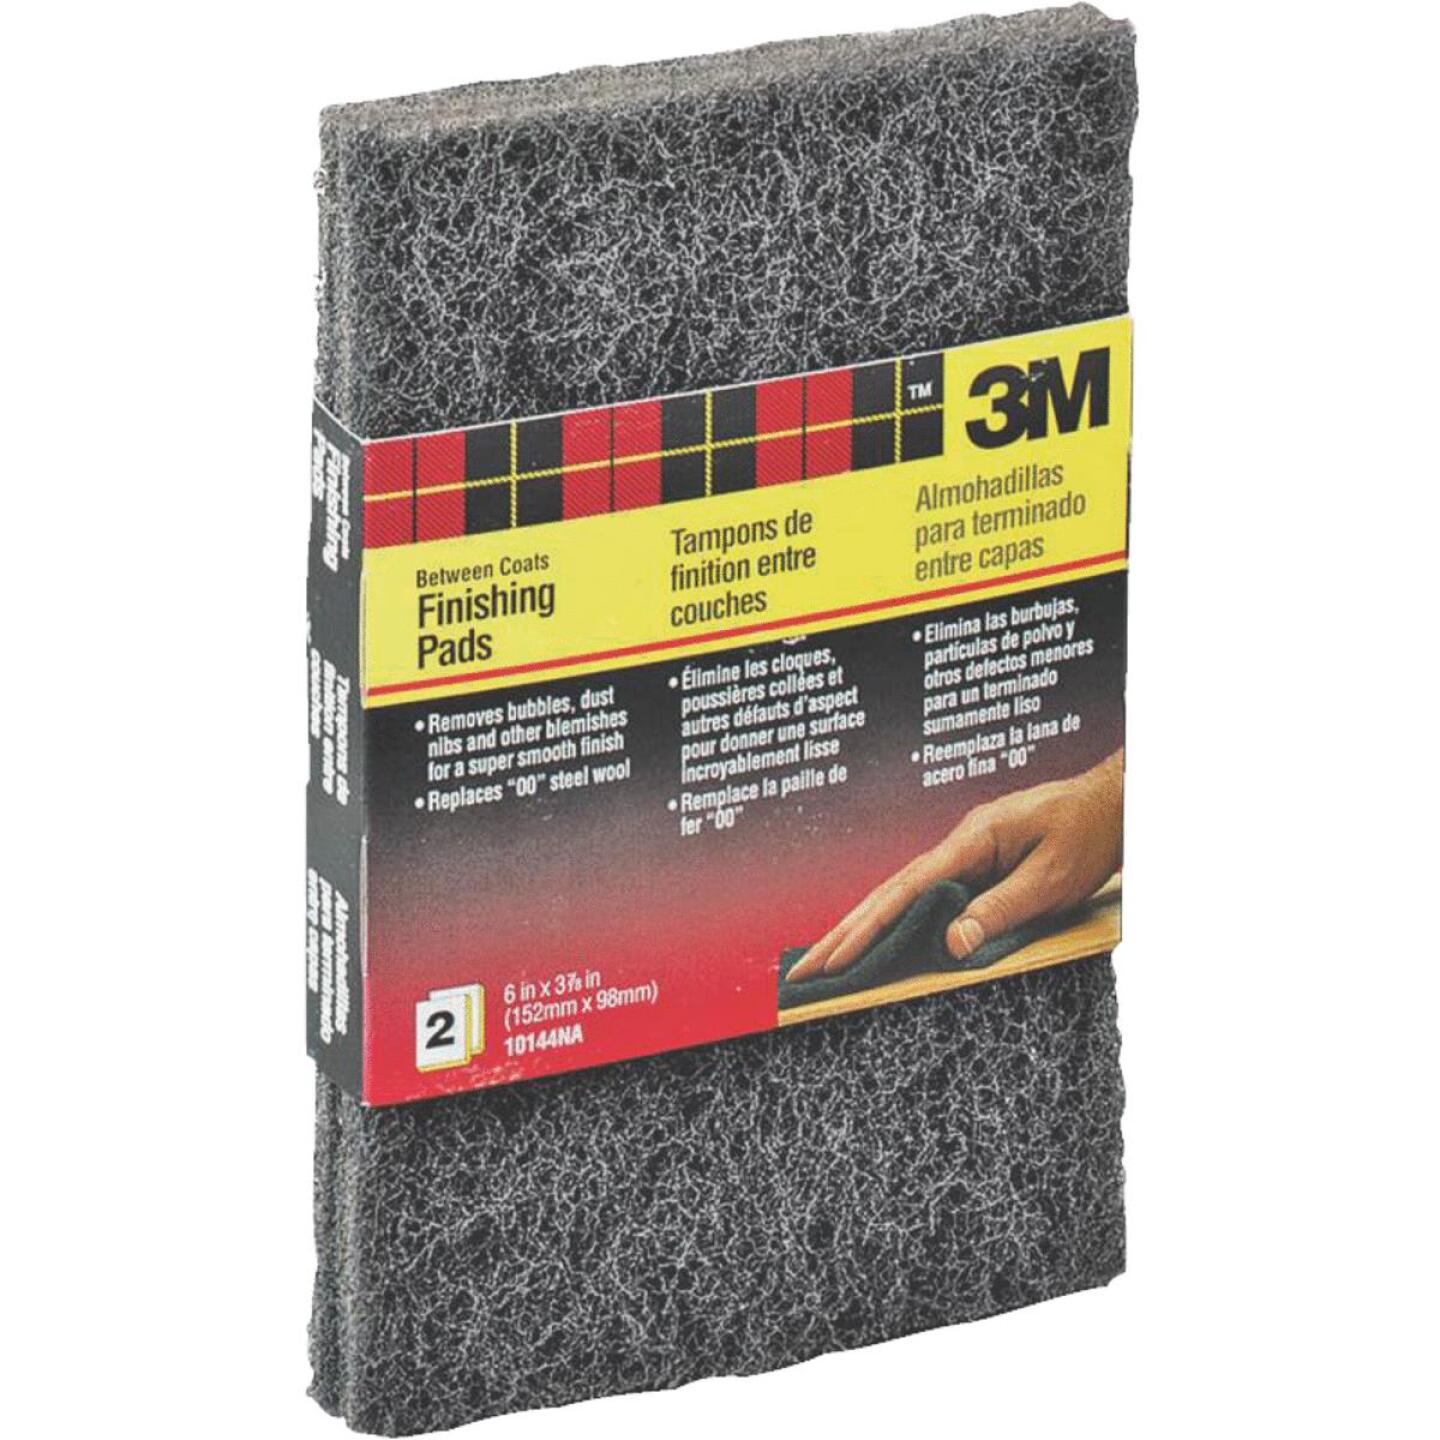 3M 3-7/8 In. x 6 In. Finishing Pad (2 Count) Image 1